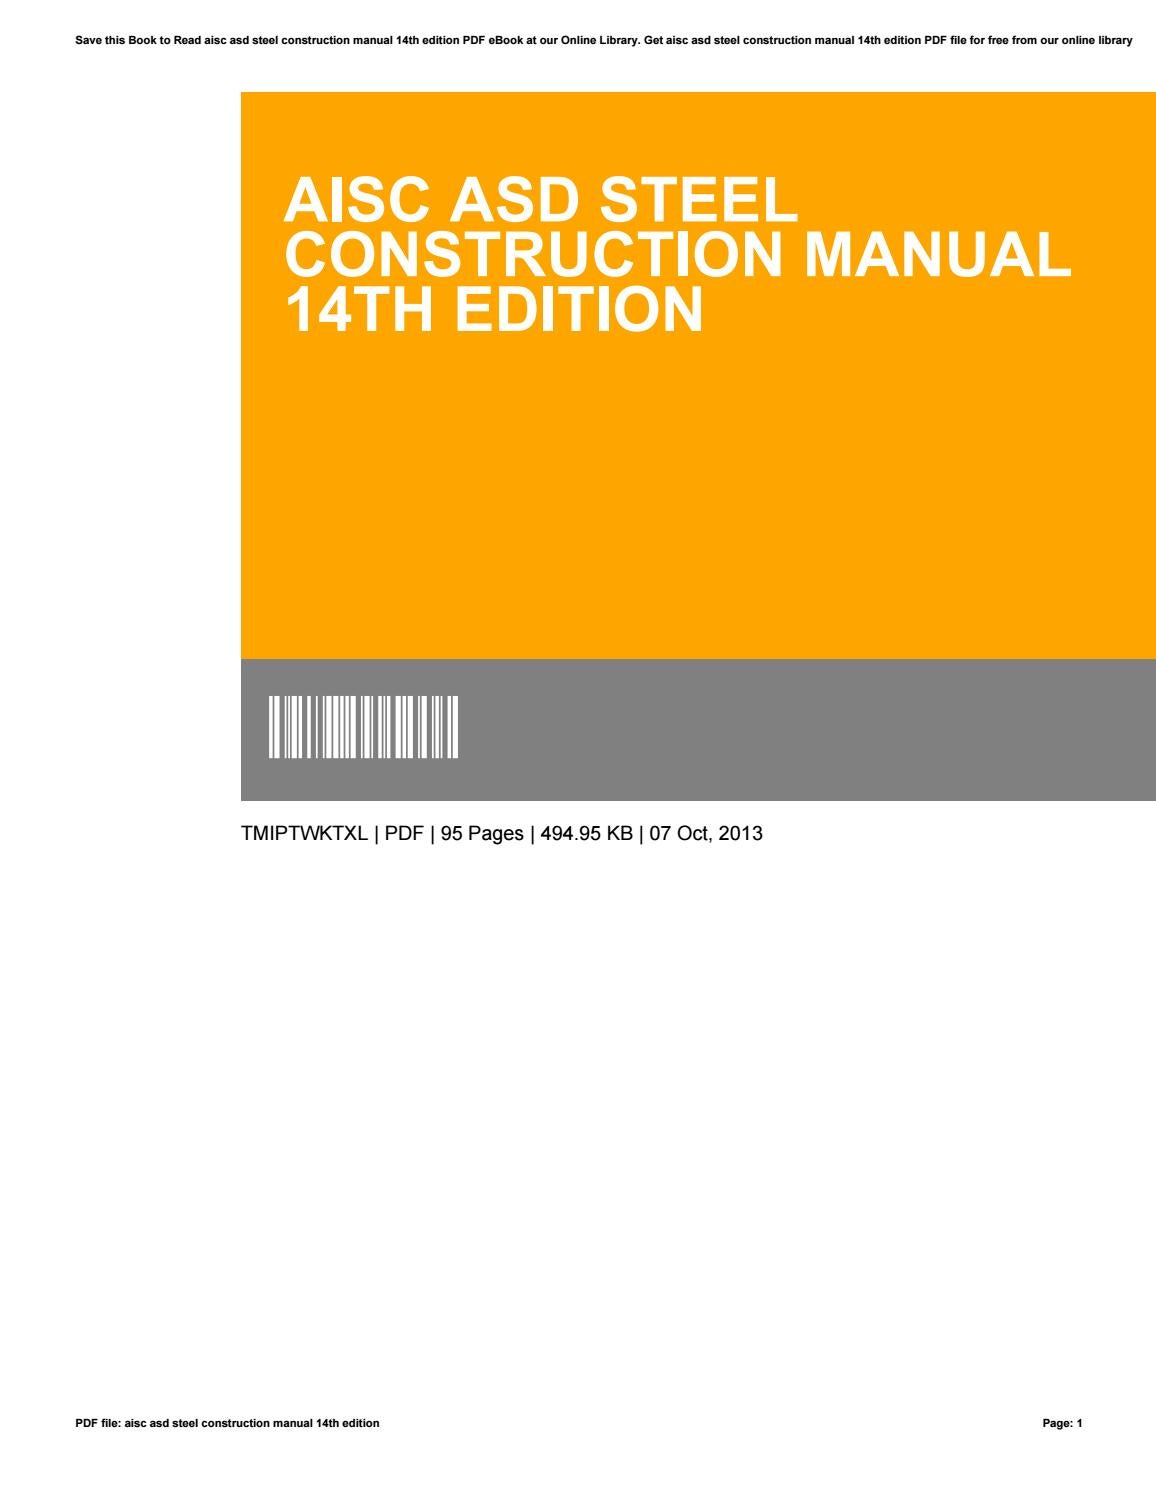 Aisc asd steel construction manual 14th edition by MikeGloria1346 - issuu